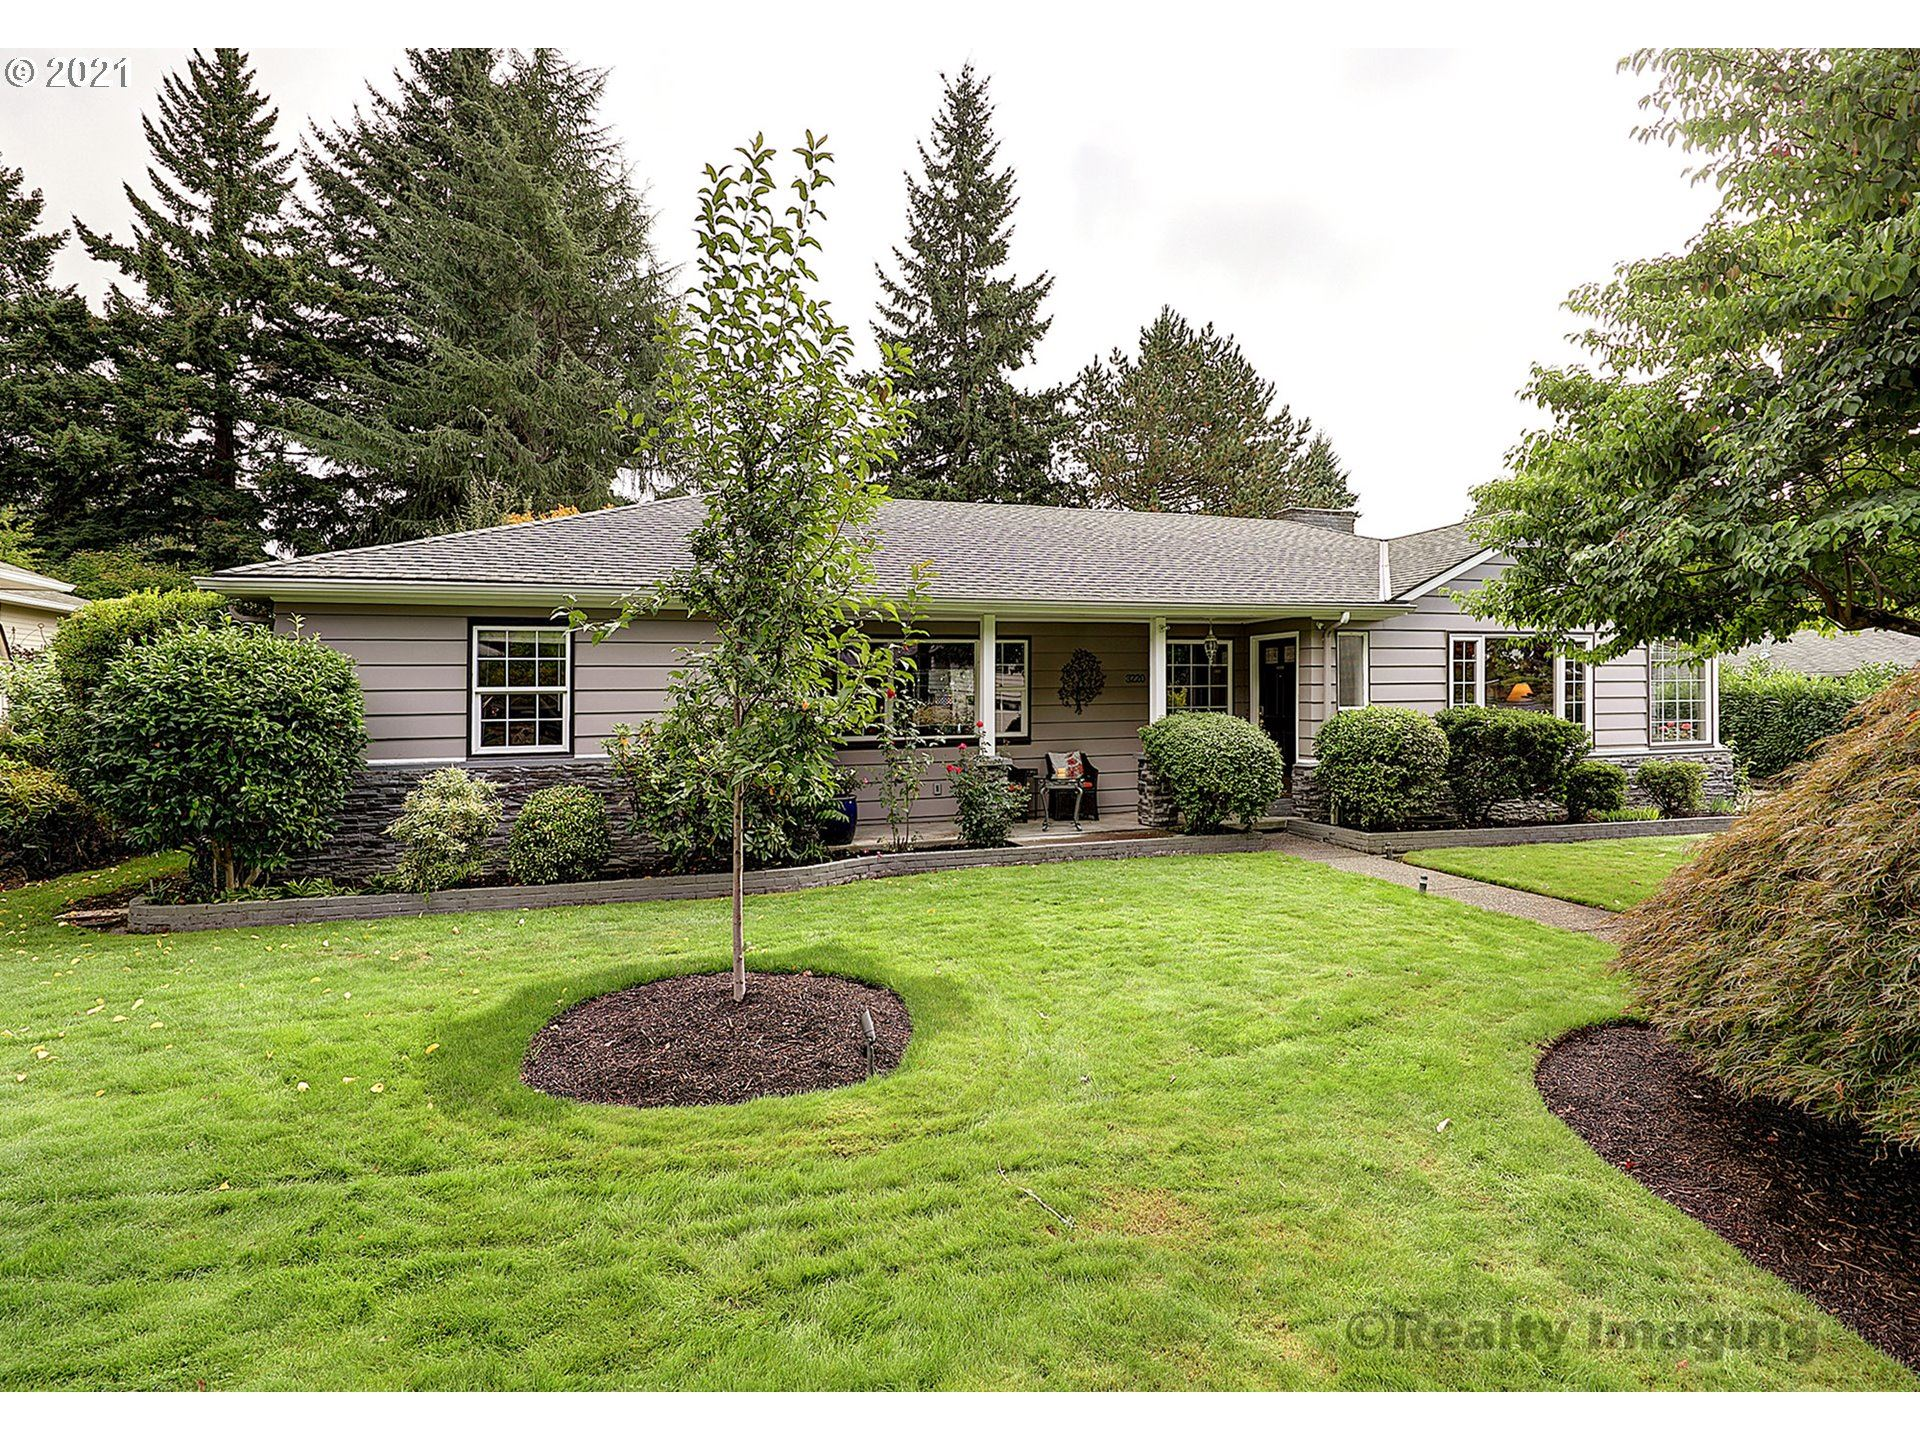 3220 SW 97TH AVE, Portland, OR 97225 - MLS#: 21116997